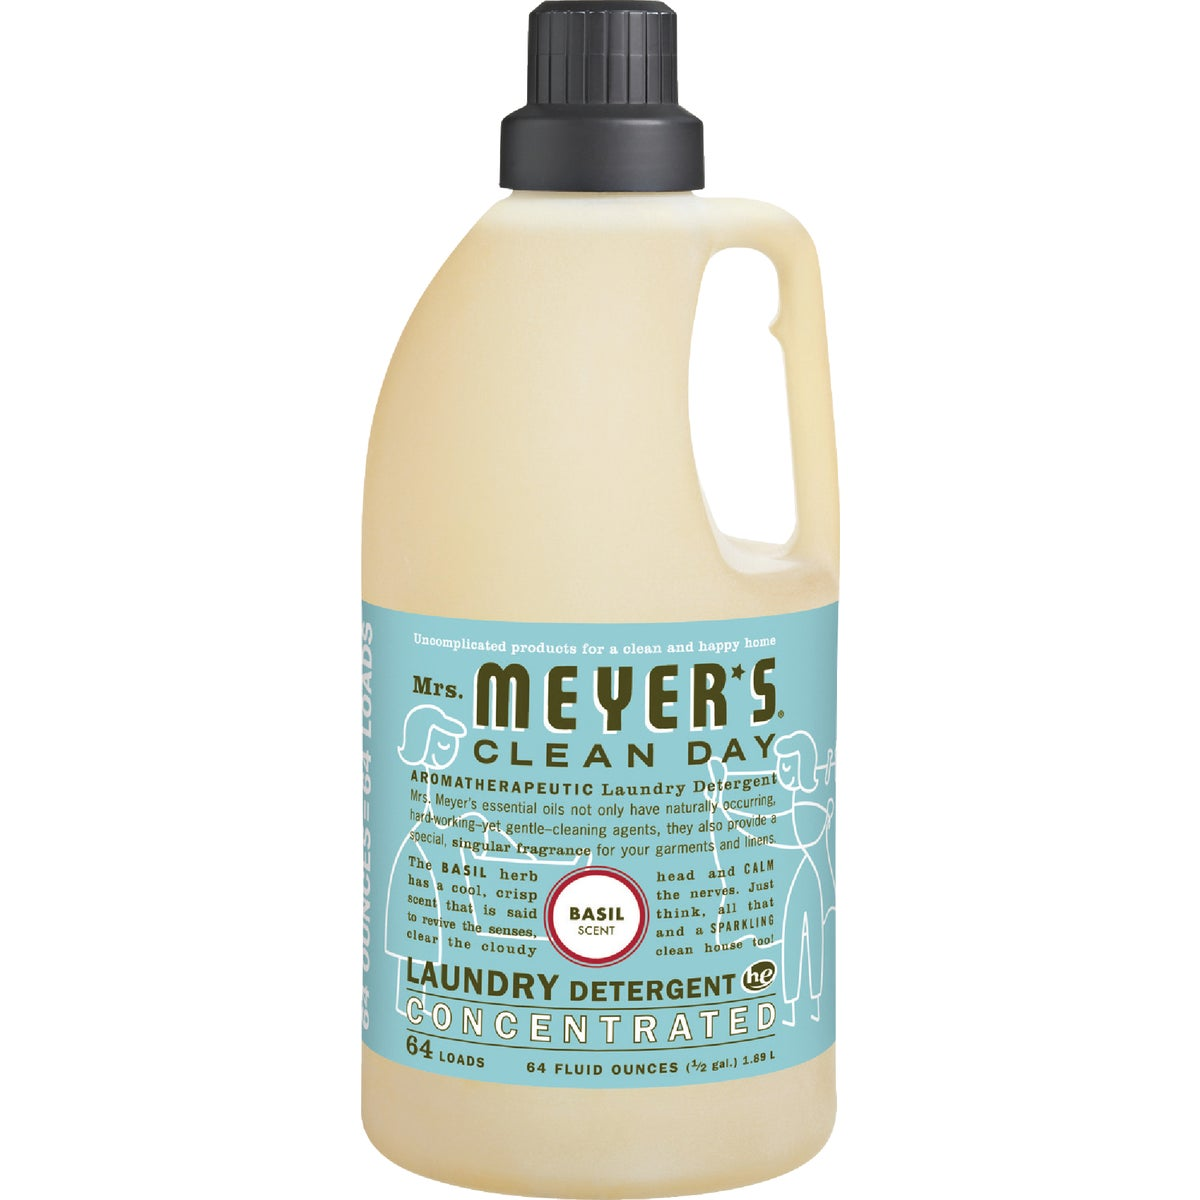 Mrs Meyer's Clean Day Concentrated Laundry Detergent, 14831